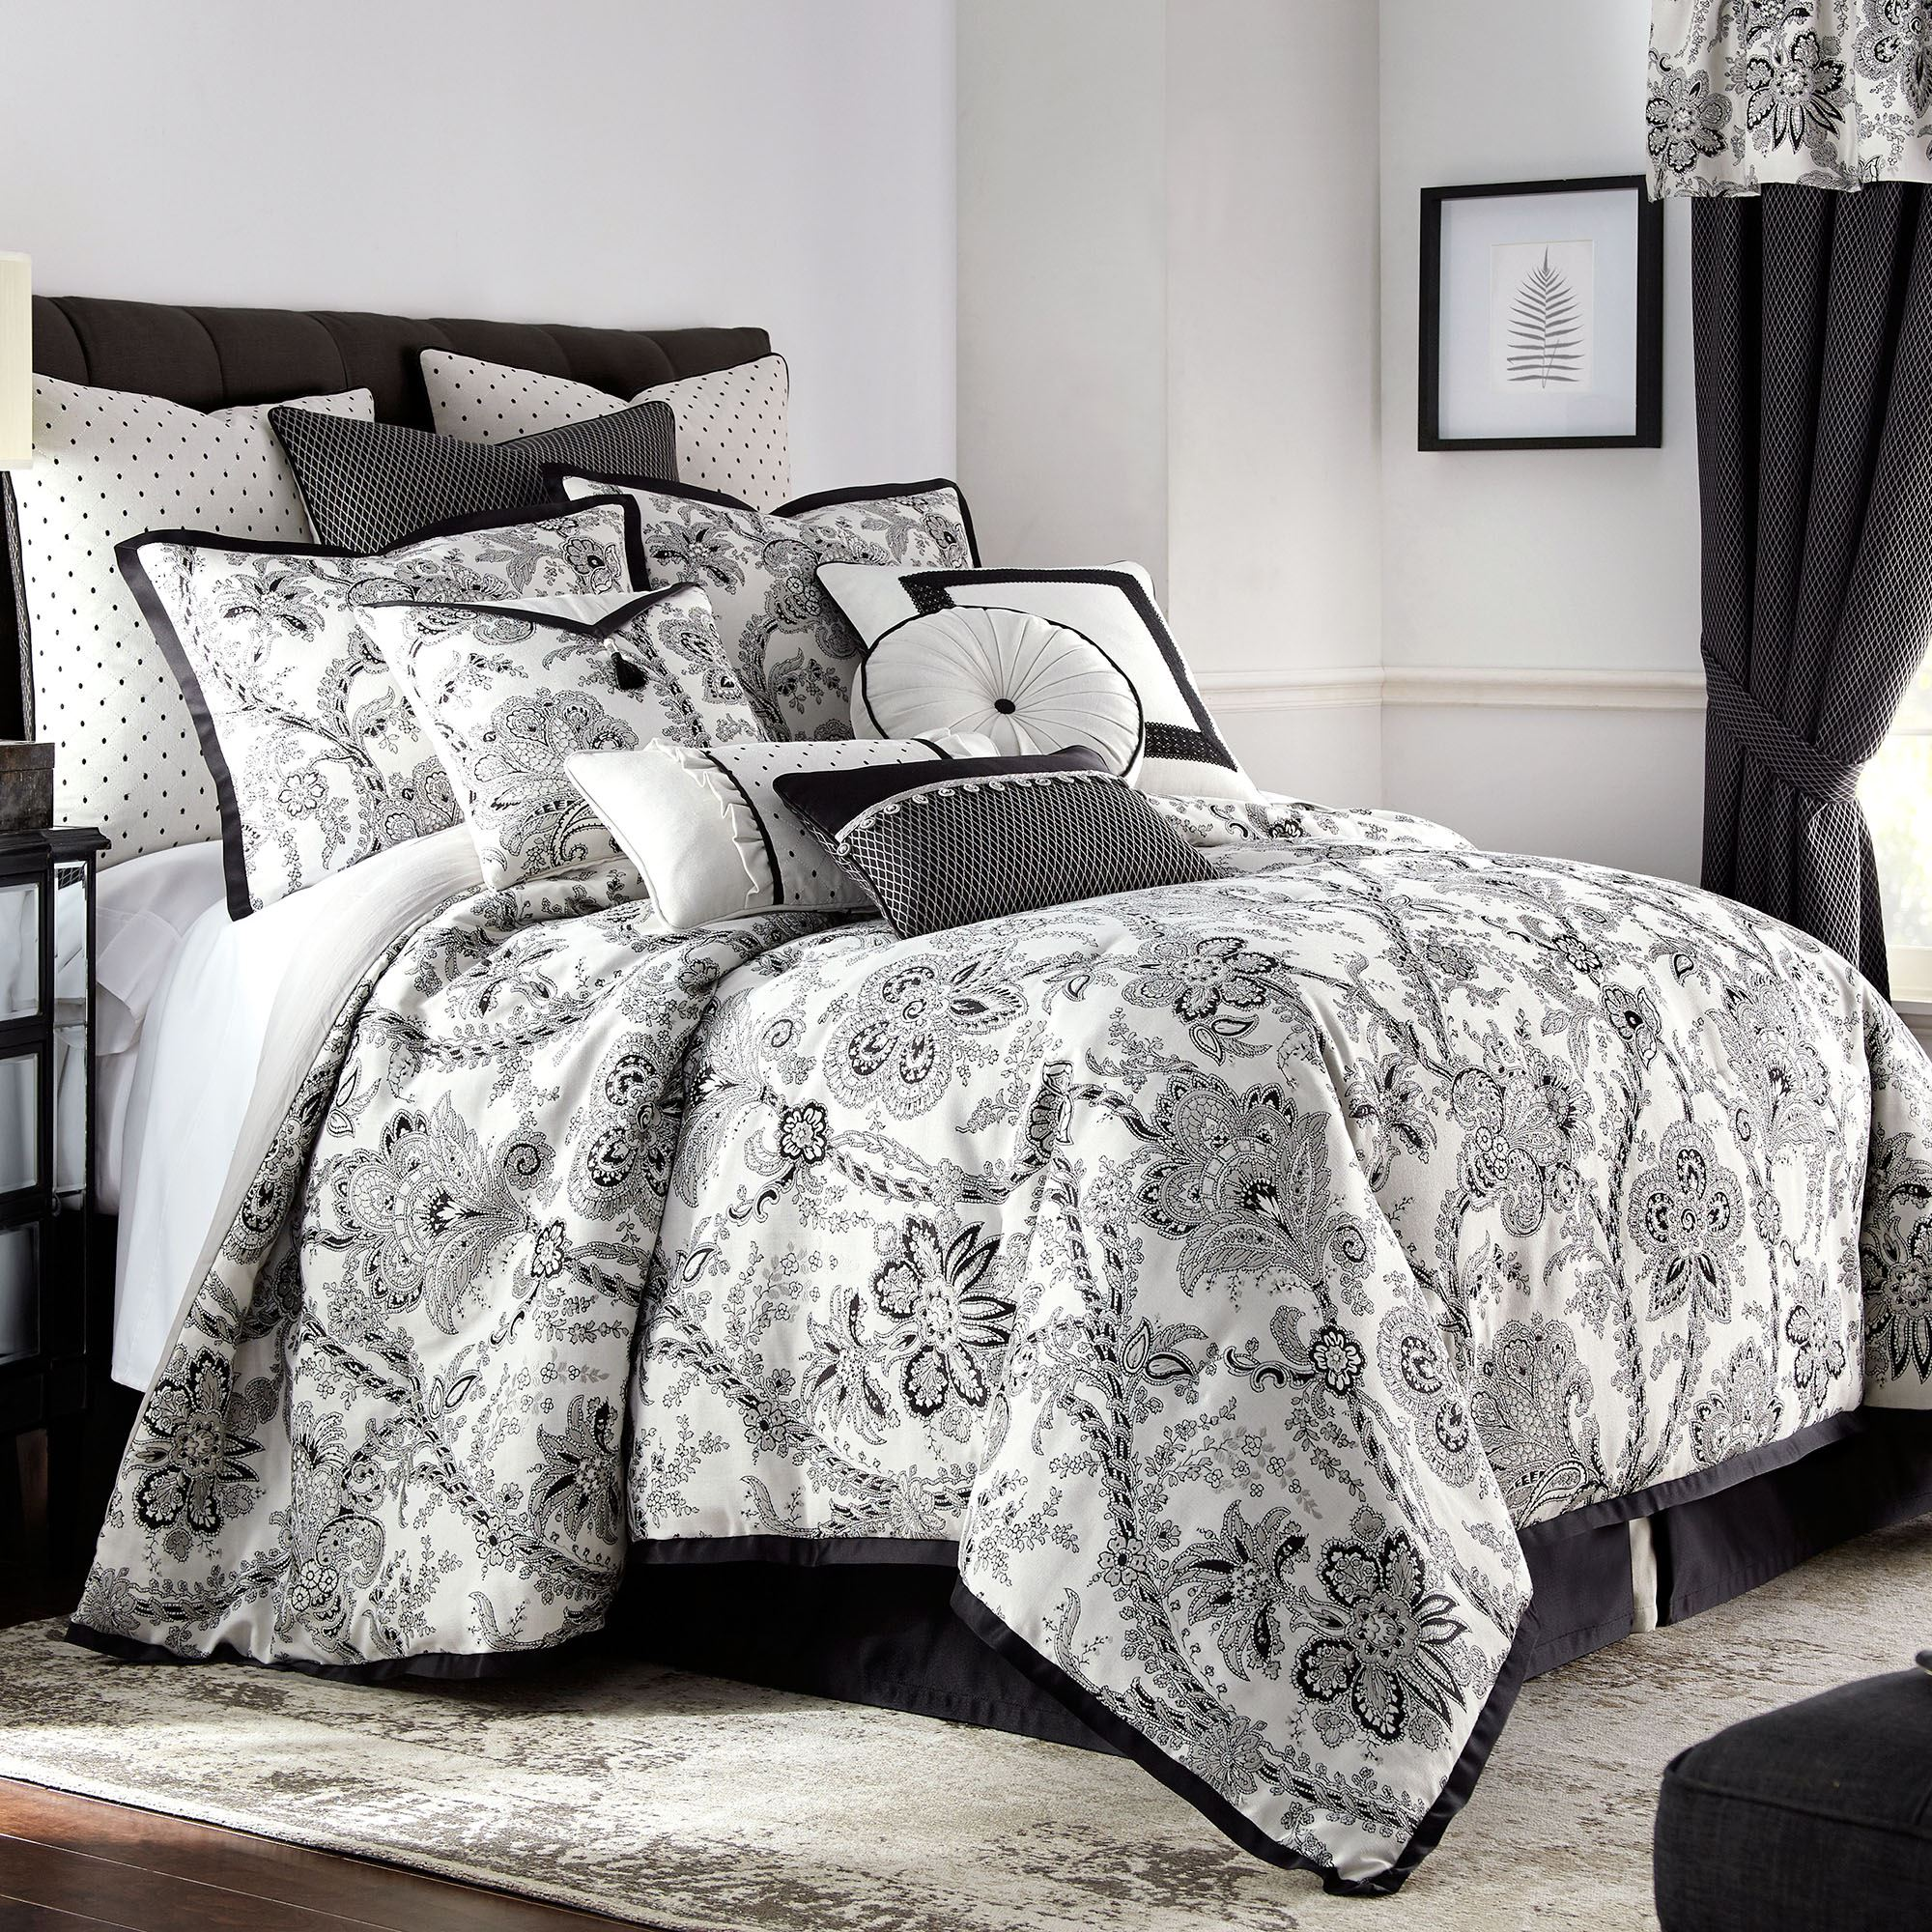 valencia black and off white jacobean floral comforter bedding by rose tree. Black Bedroom Furniture Sets. Home Design Ideas